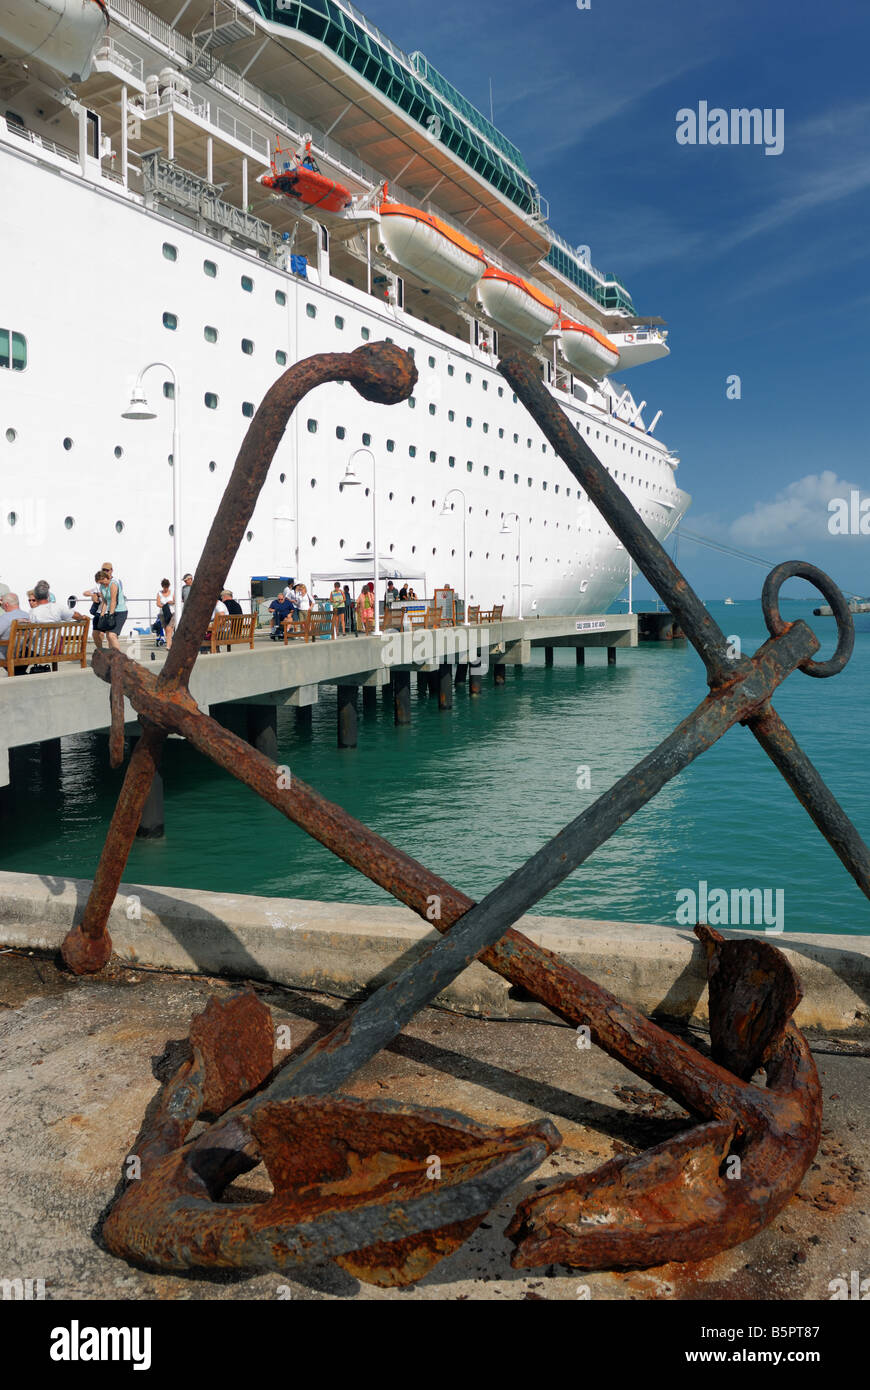 Two old anchors sit on the dock near the cruise ship Majesty of the Seas at Key West, Florida - Stock Image